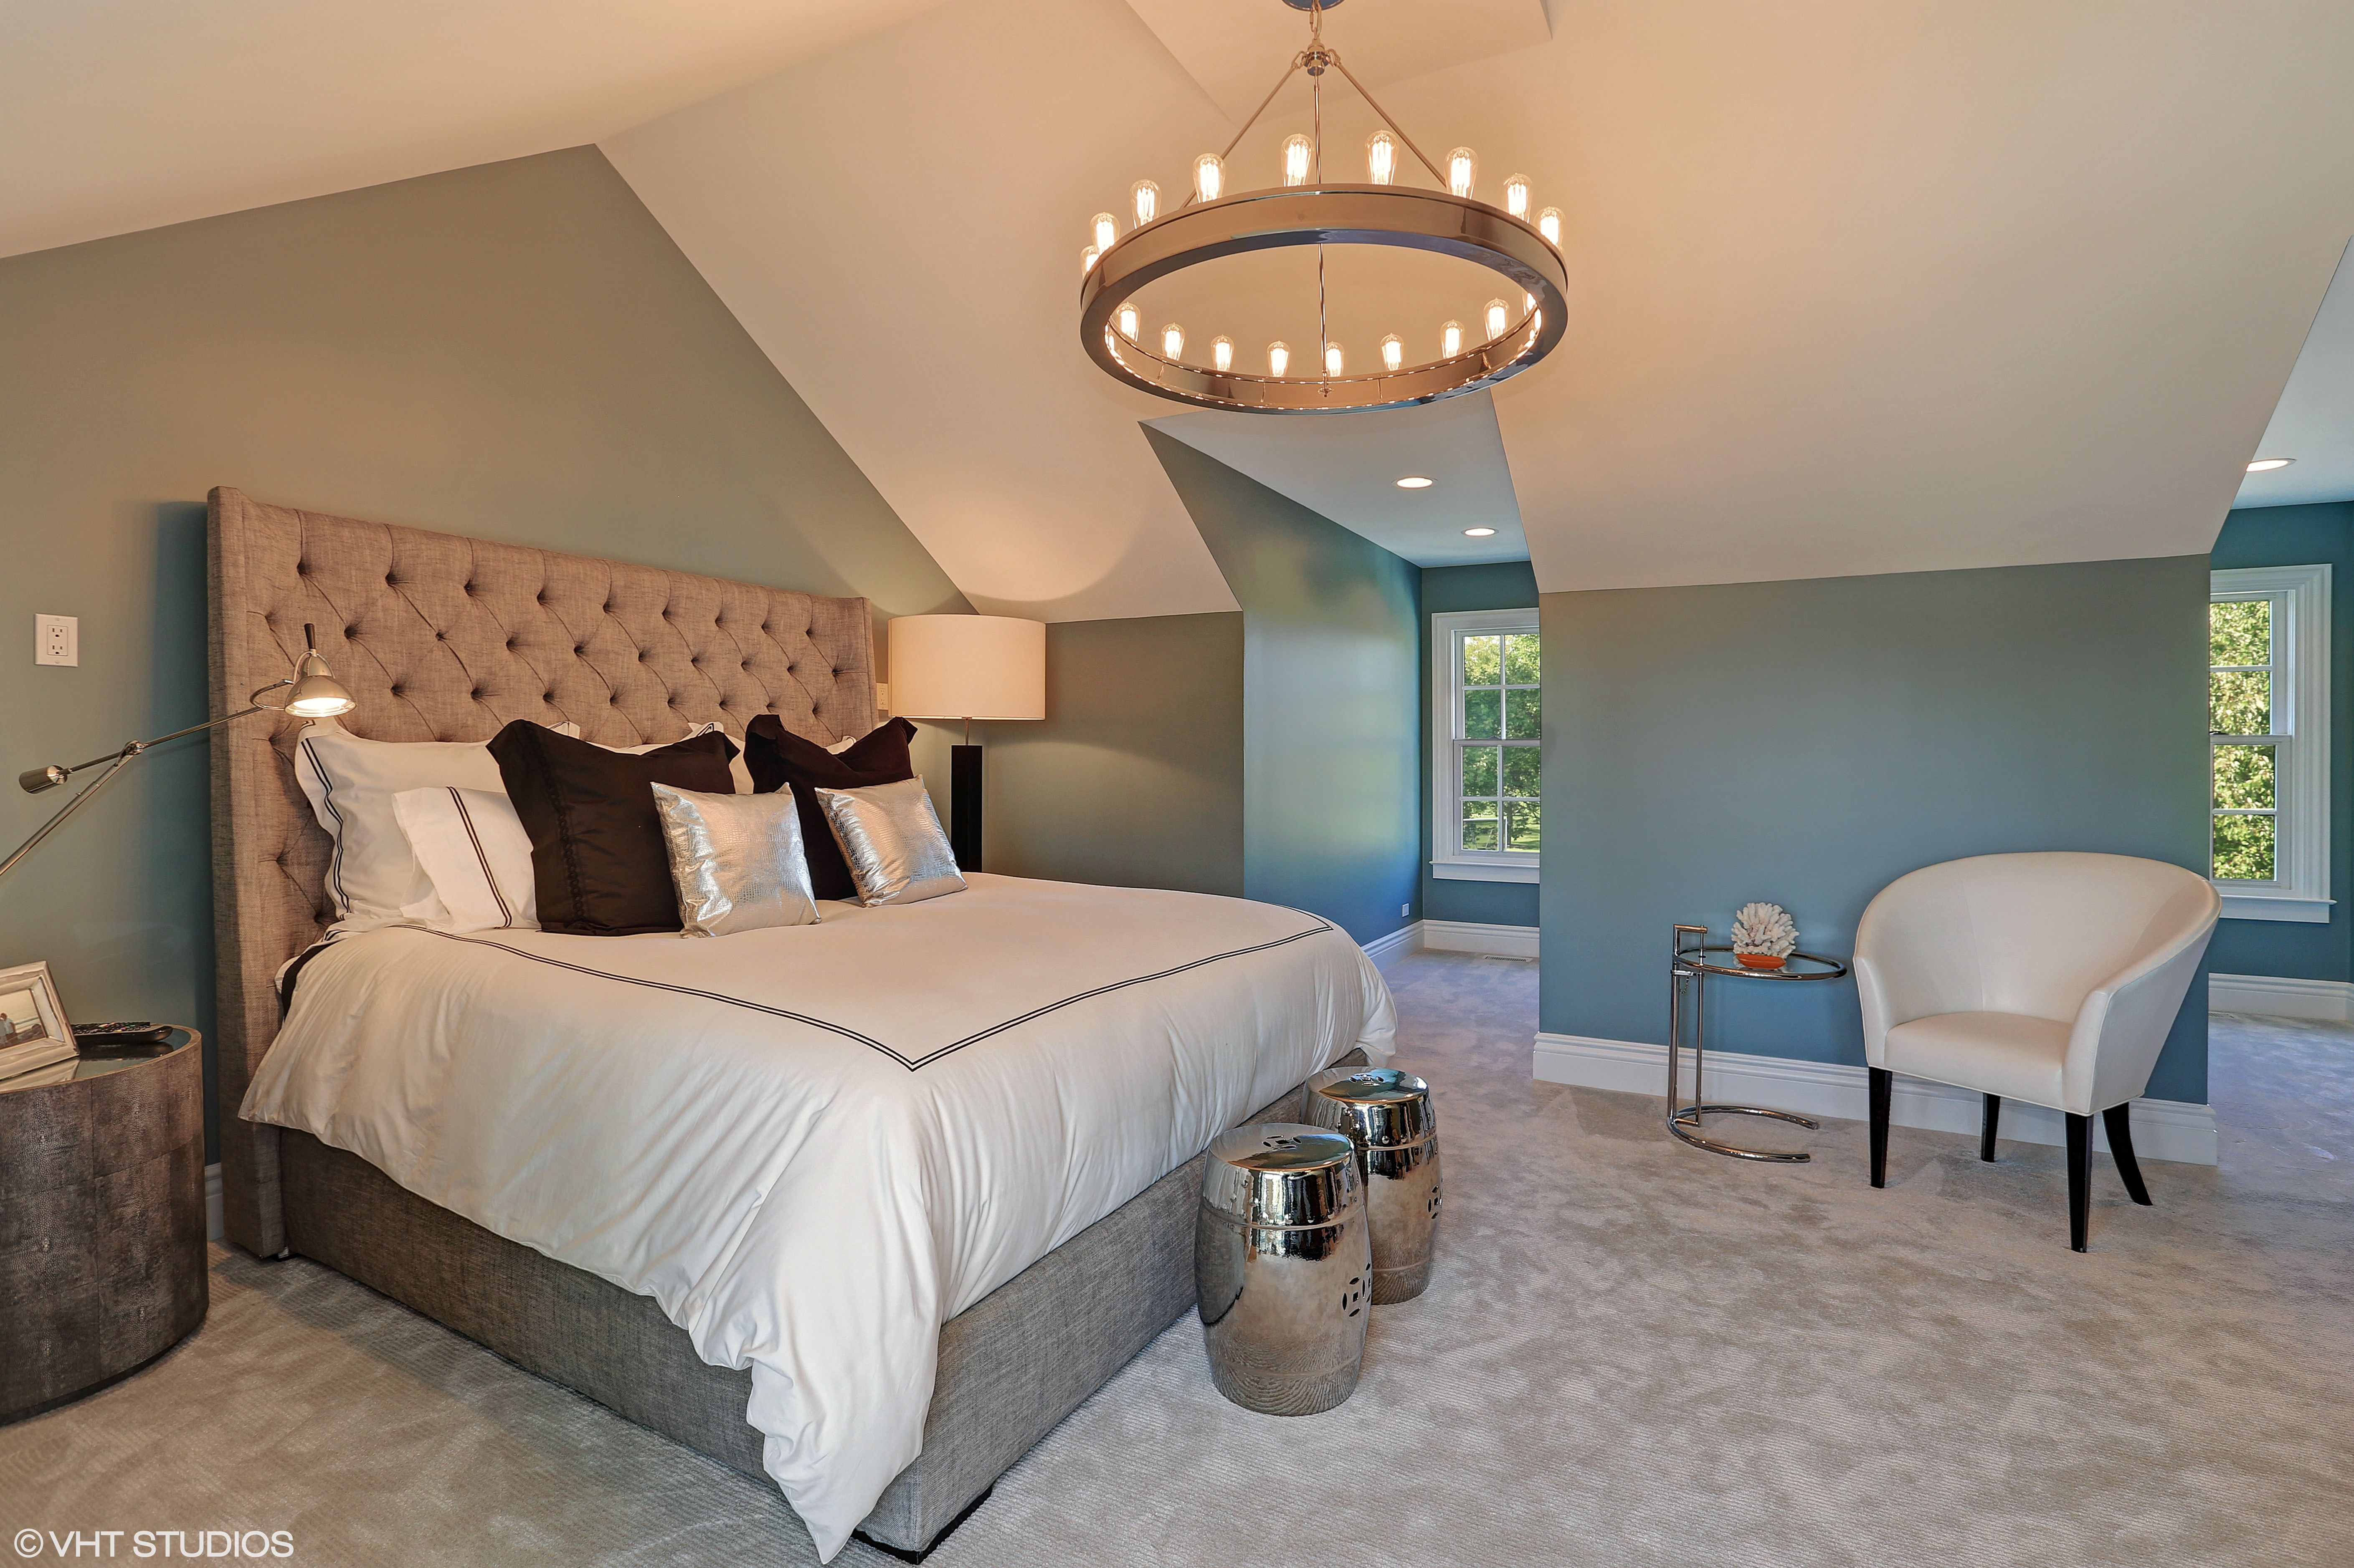 The rustic chandelier in this bedroom gives this bedroom a ...